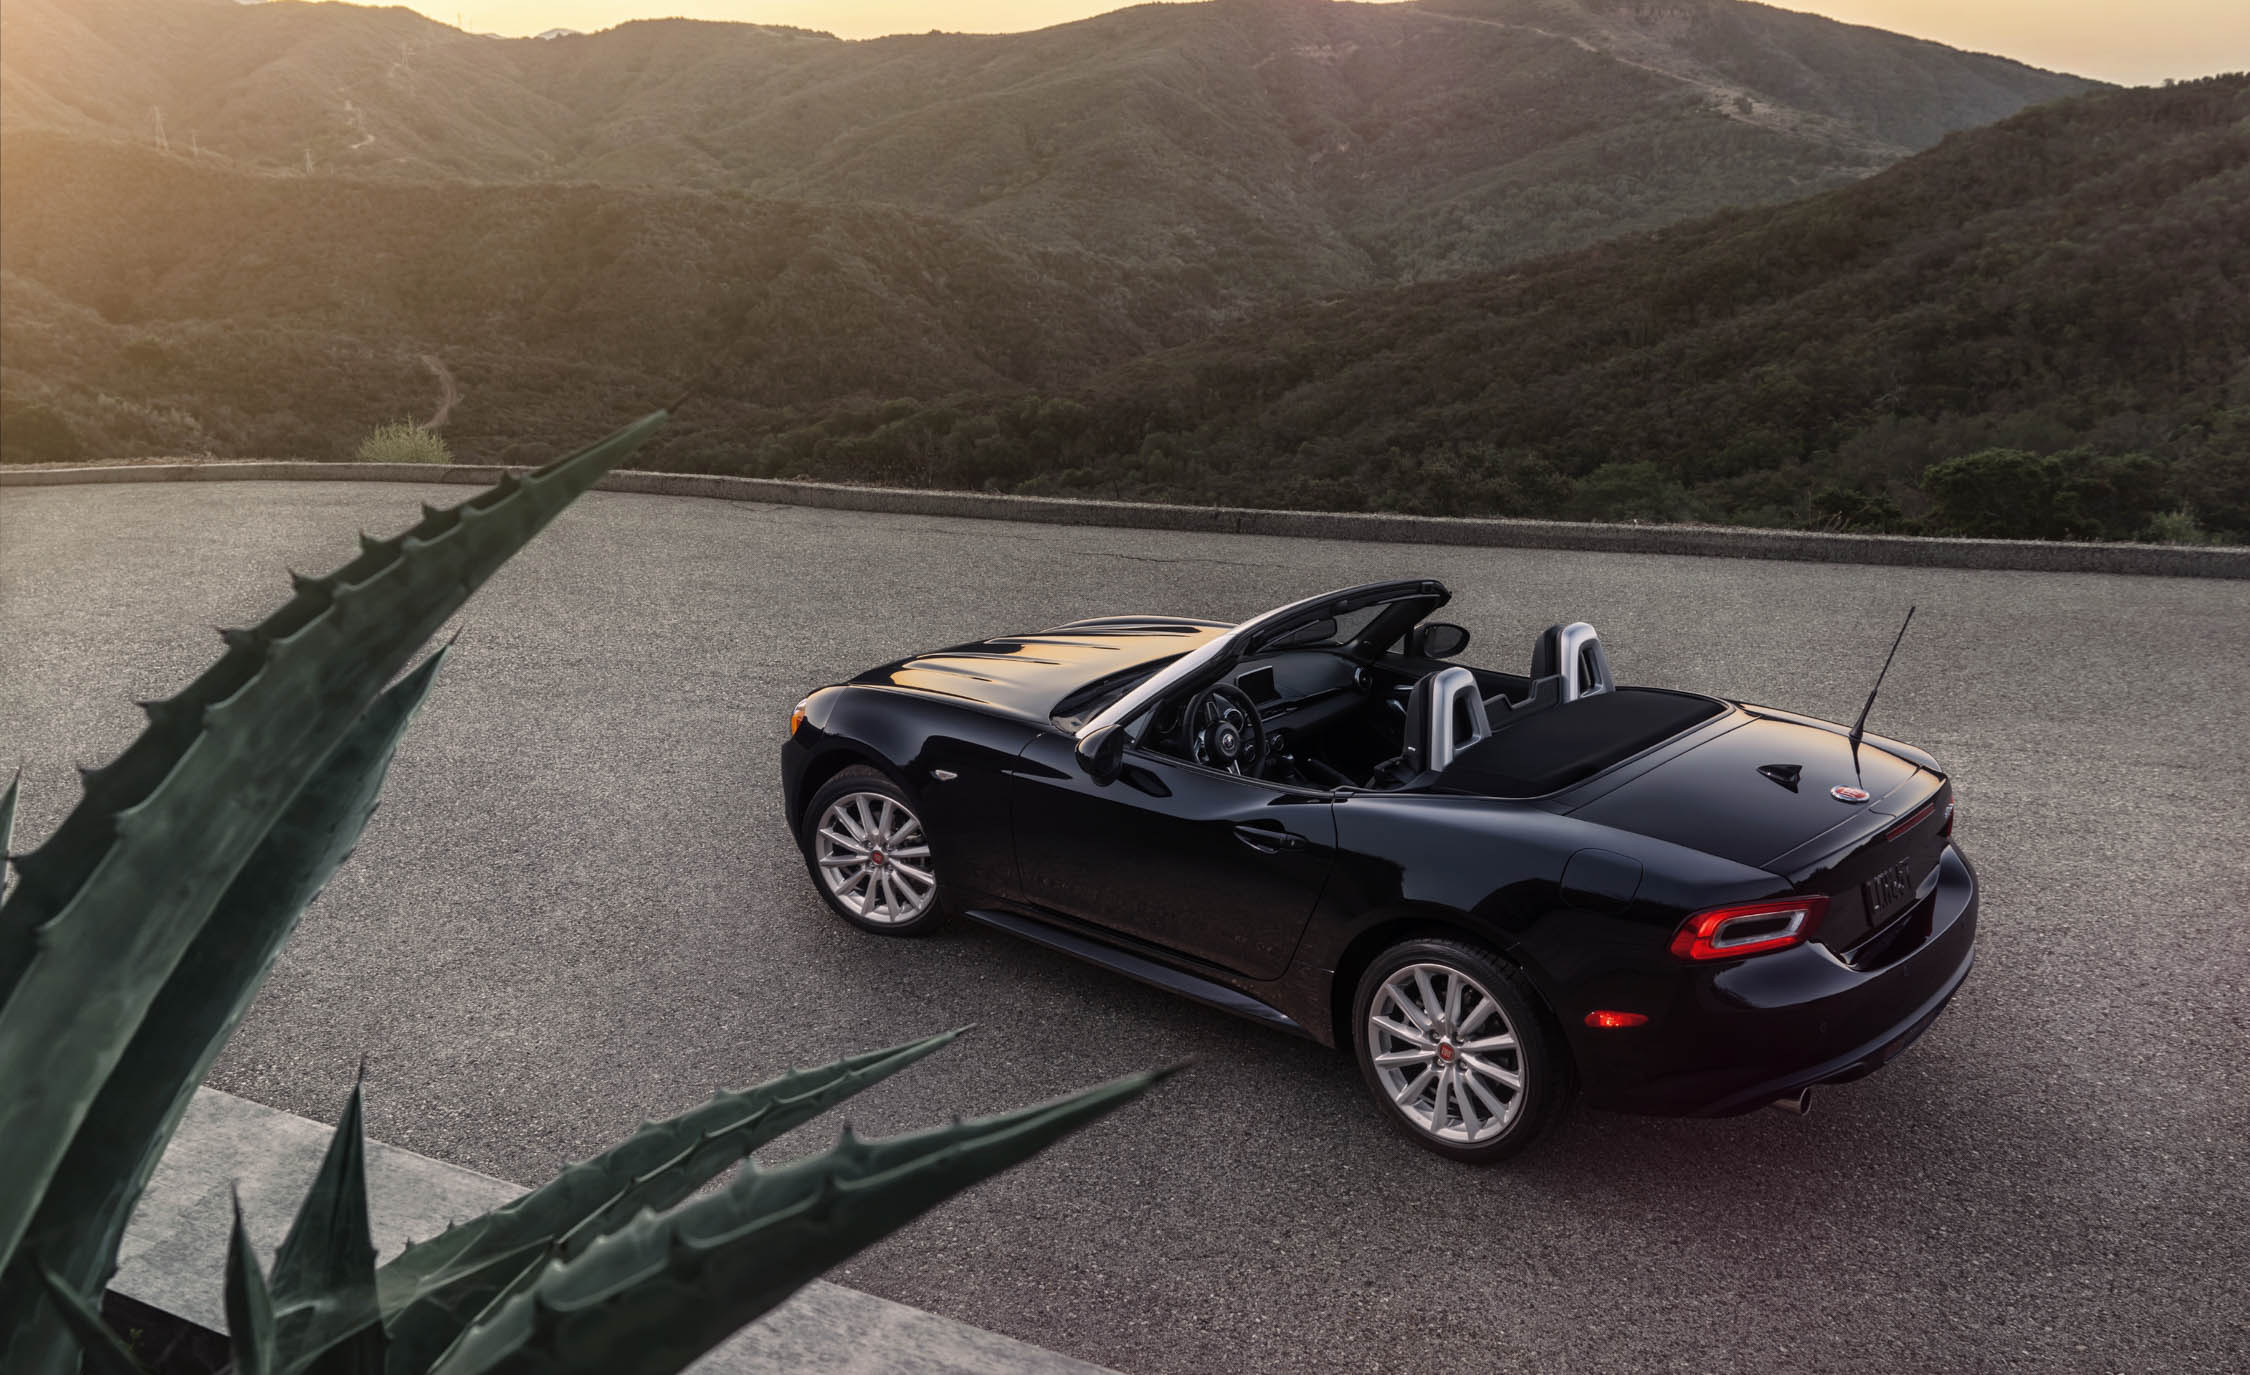 2017 Fiat 124 Spider Convertible Interior Preview (View 20 of 23)